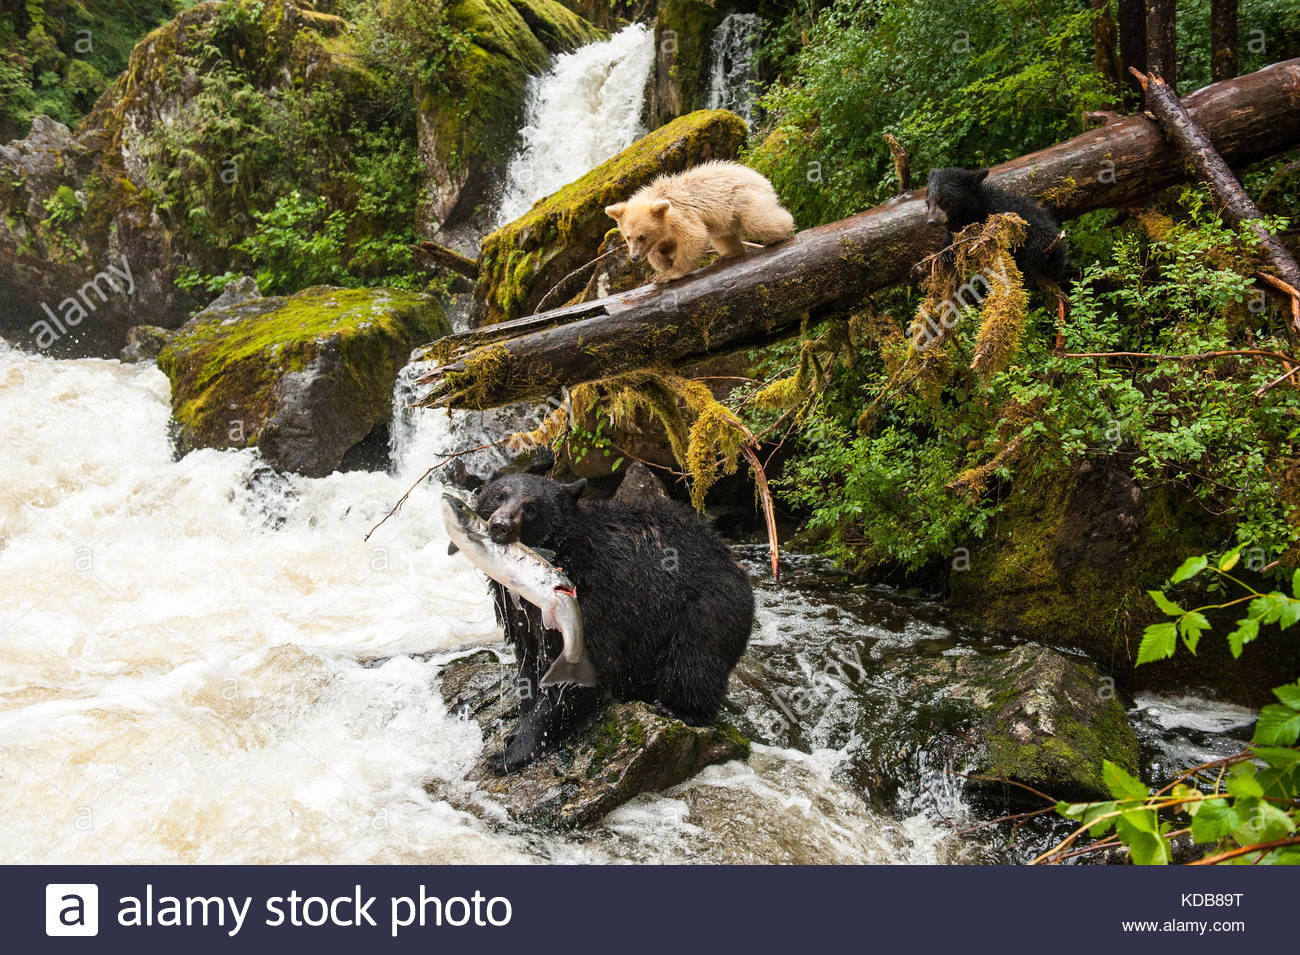 A mother black bear, Ursus americanus kermodei, with a coho salmon while her spirit bear cub and sibling look on. - Stock Image